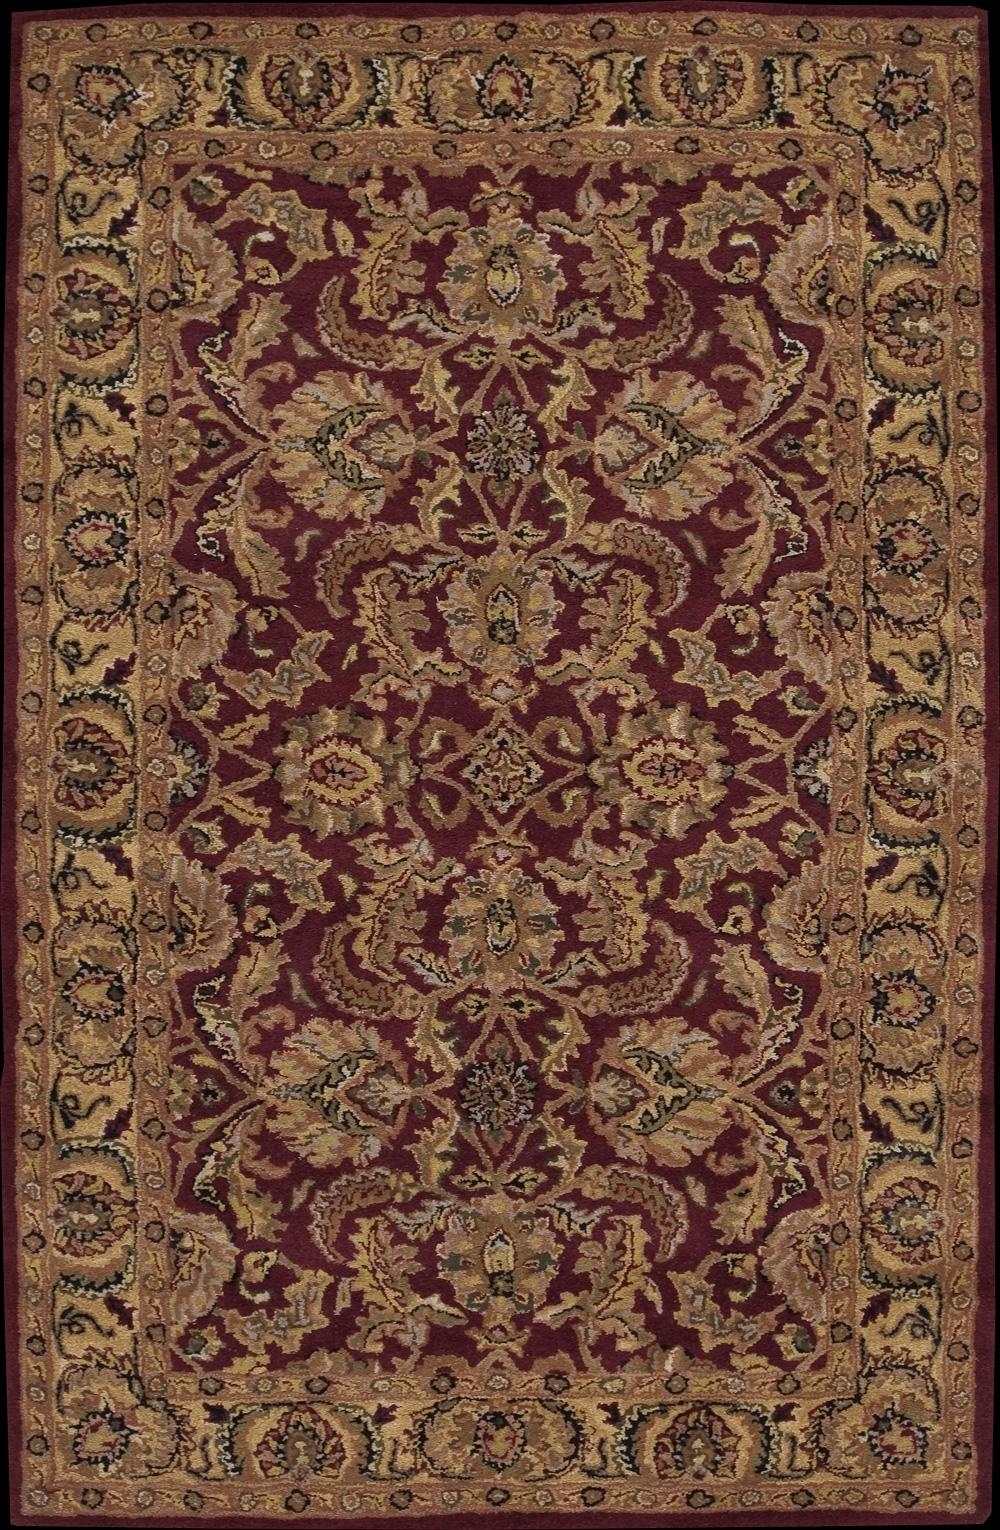 Nourison India House Area Rug 5' x 8' - Item Number: 21229